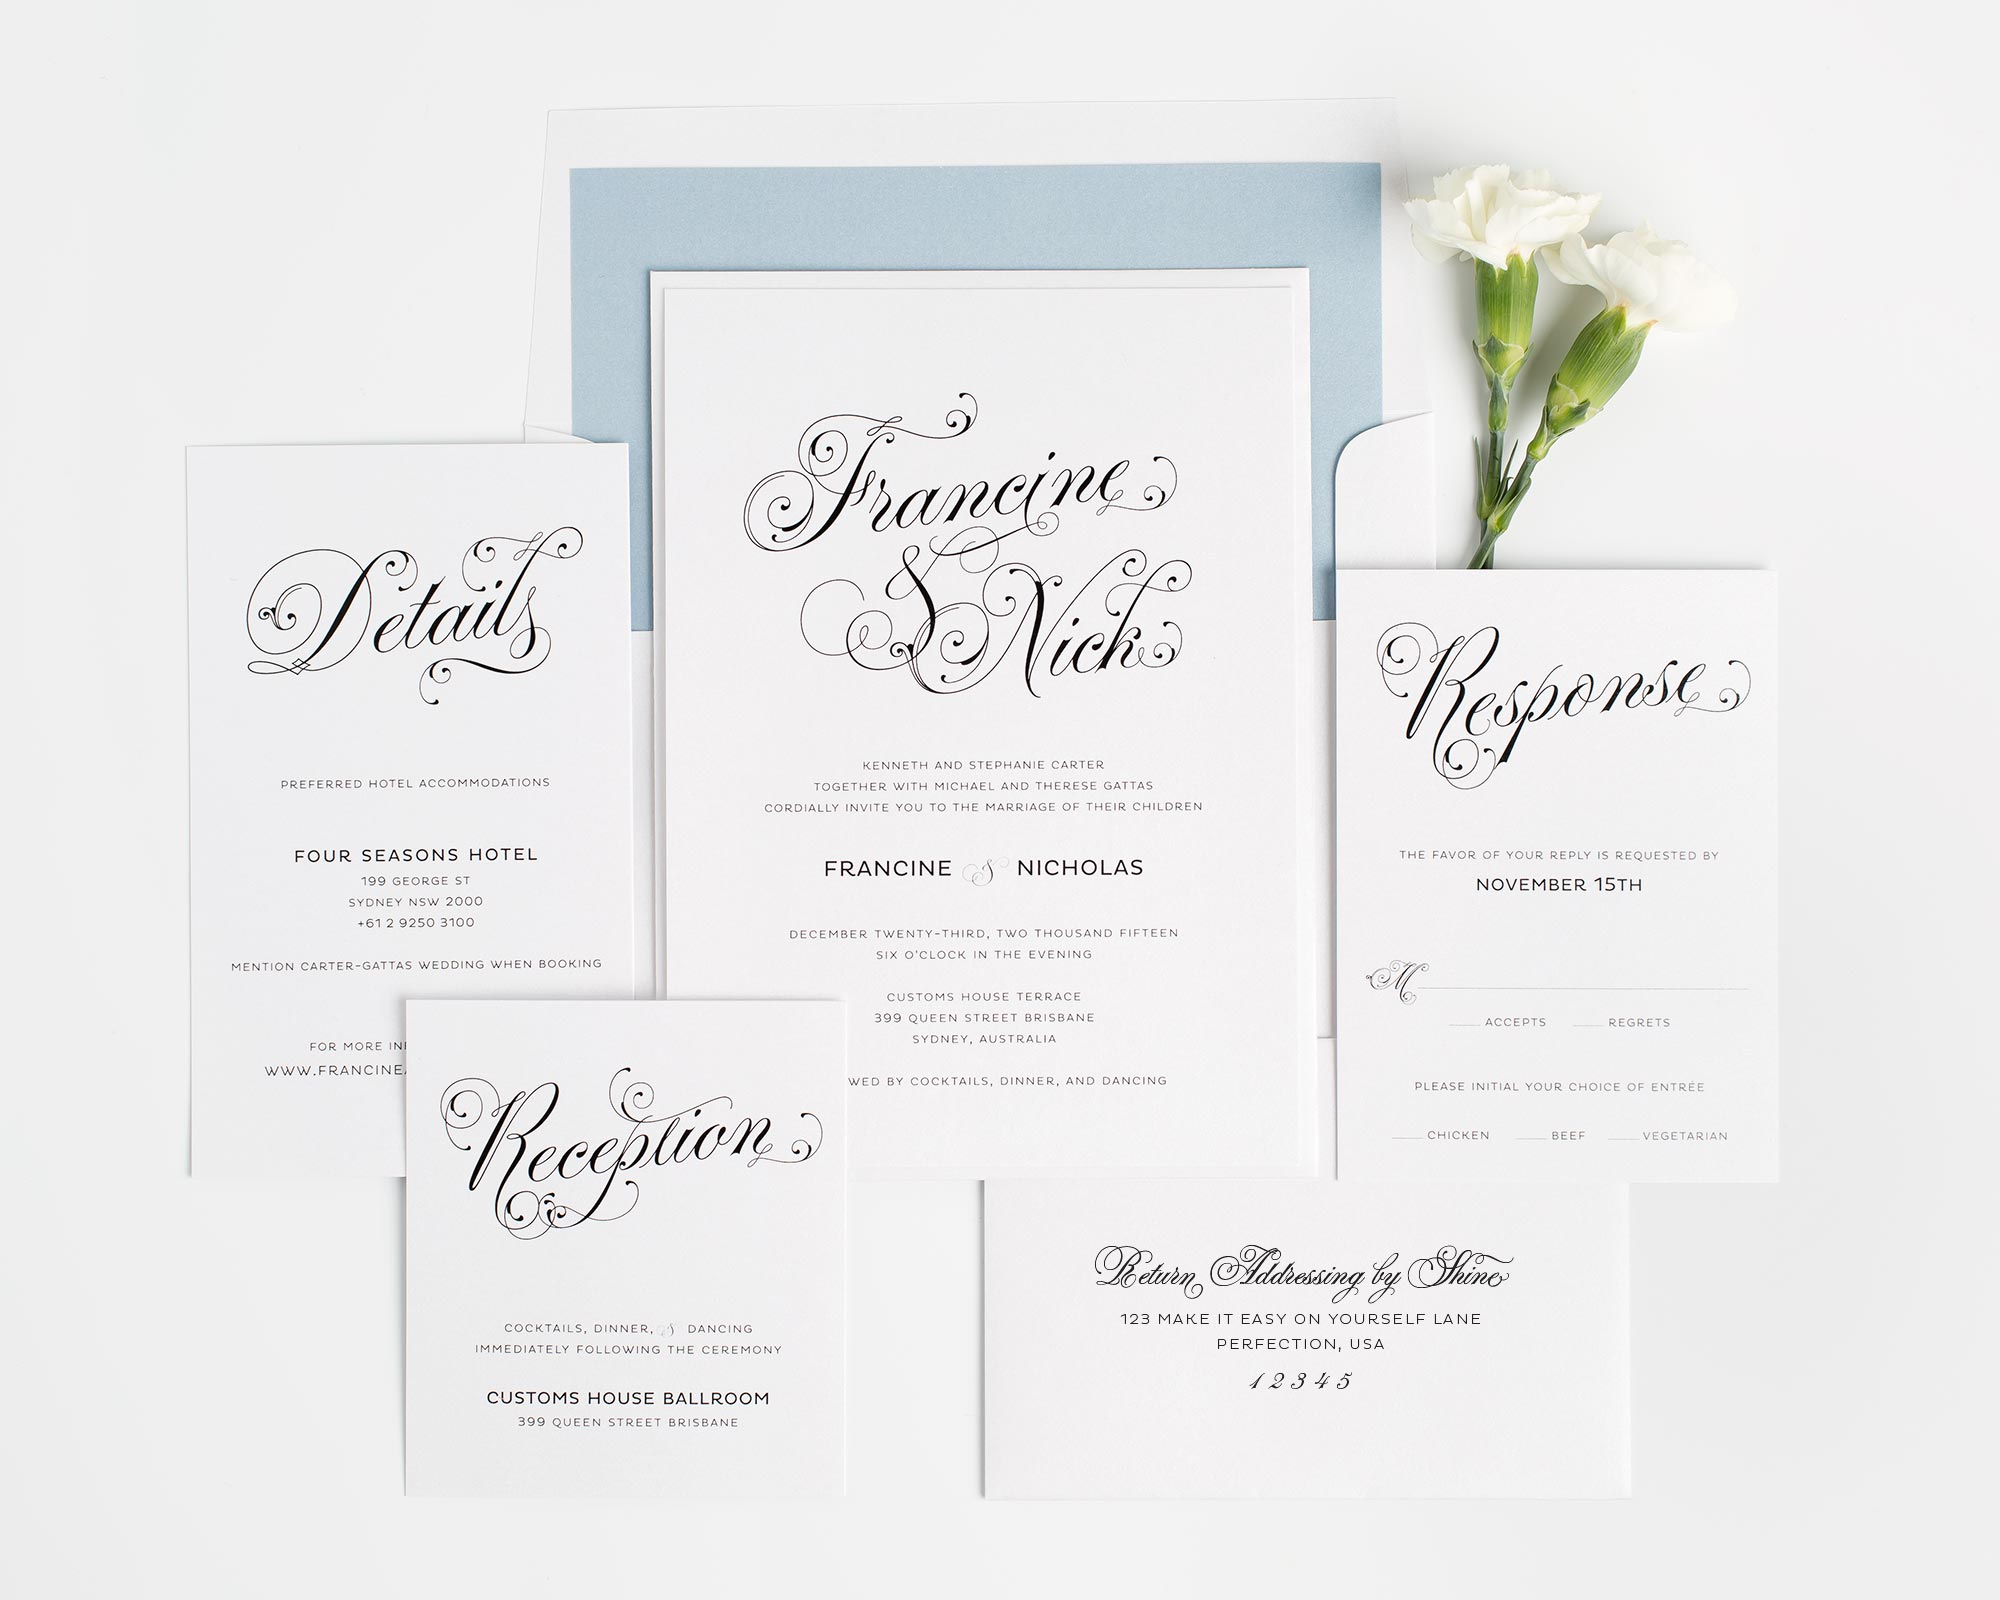 Glamorous script wedding invitations wedding invitations by shine vintage wedding invitation with envelope previous next solutioingenieria